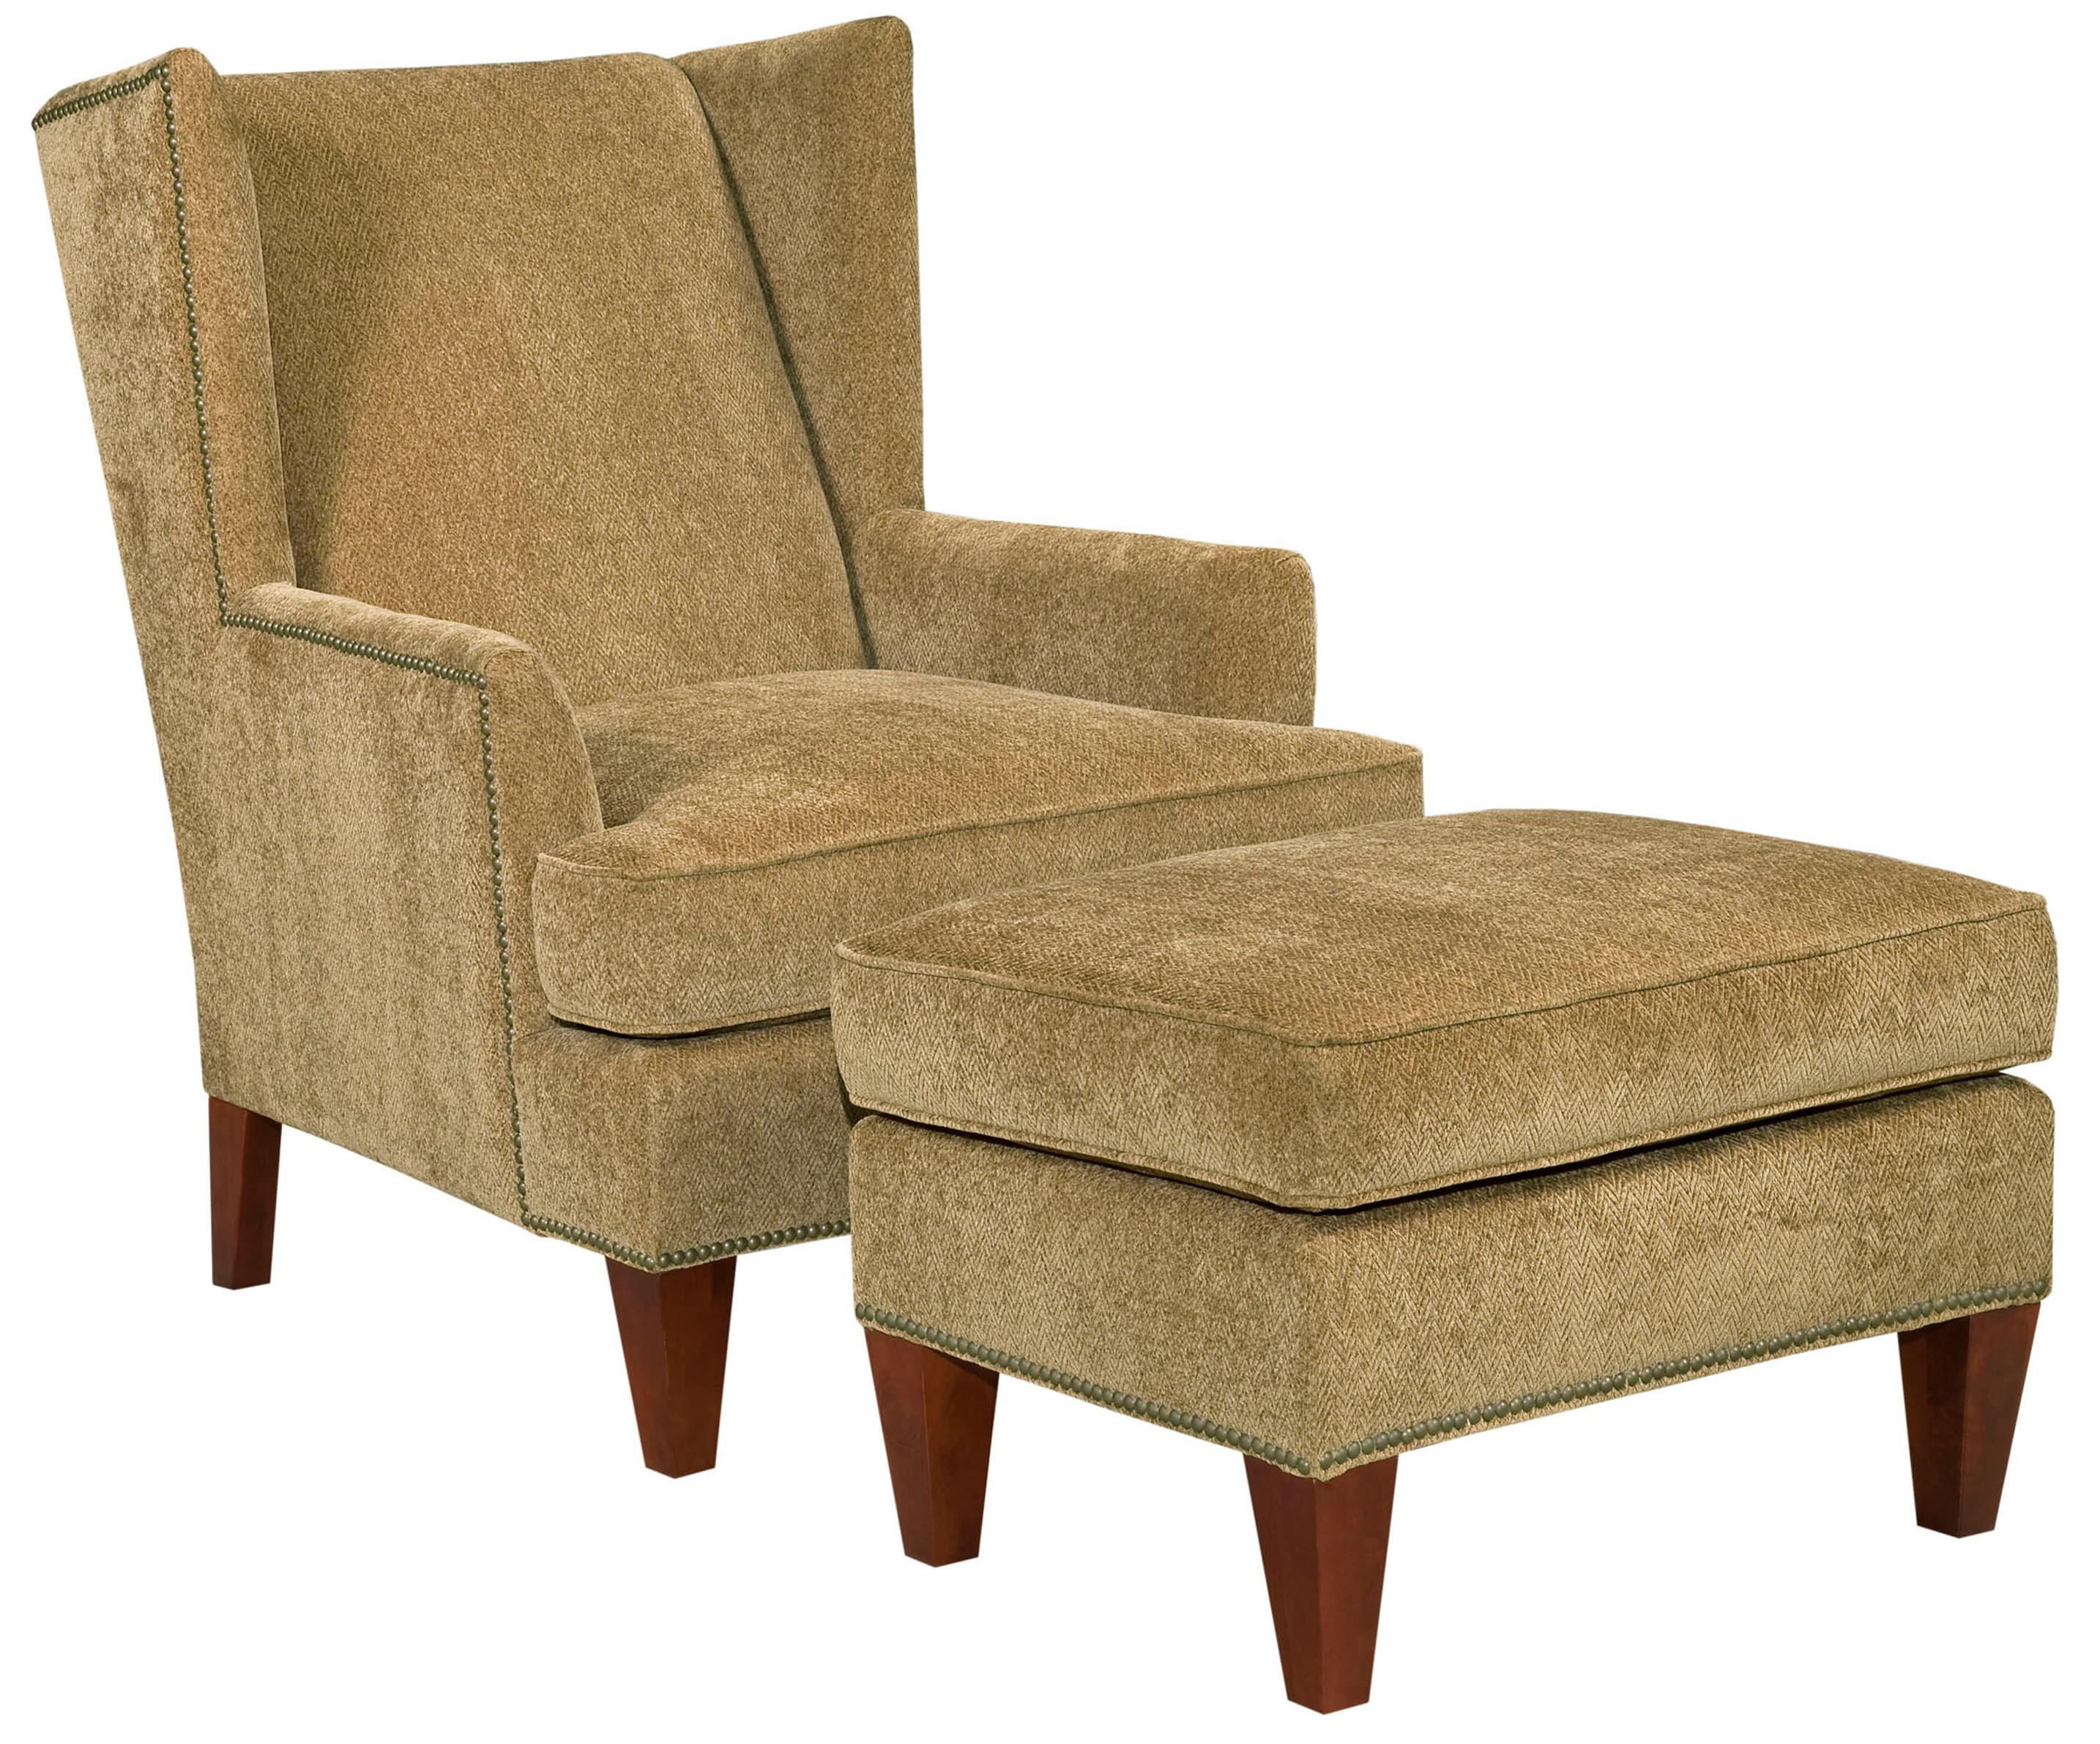 Broyhill Furniture Accent Chairs and Ottomans  Chair and Ottoman - Item Number: 9039-0+5